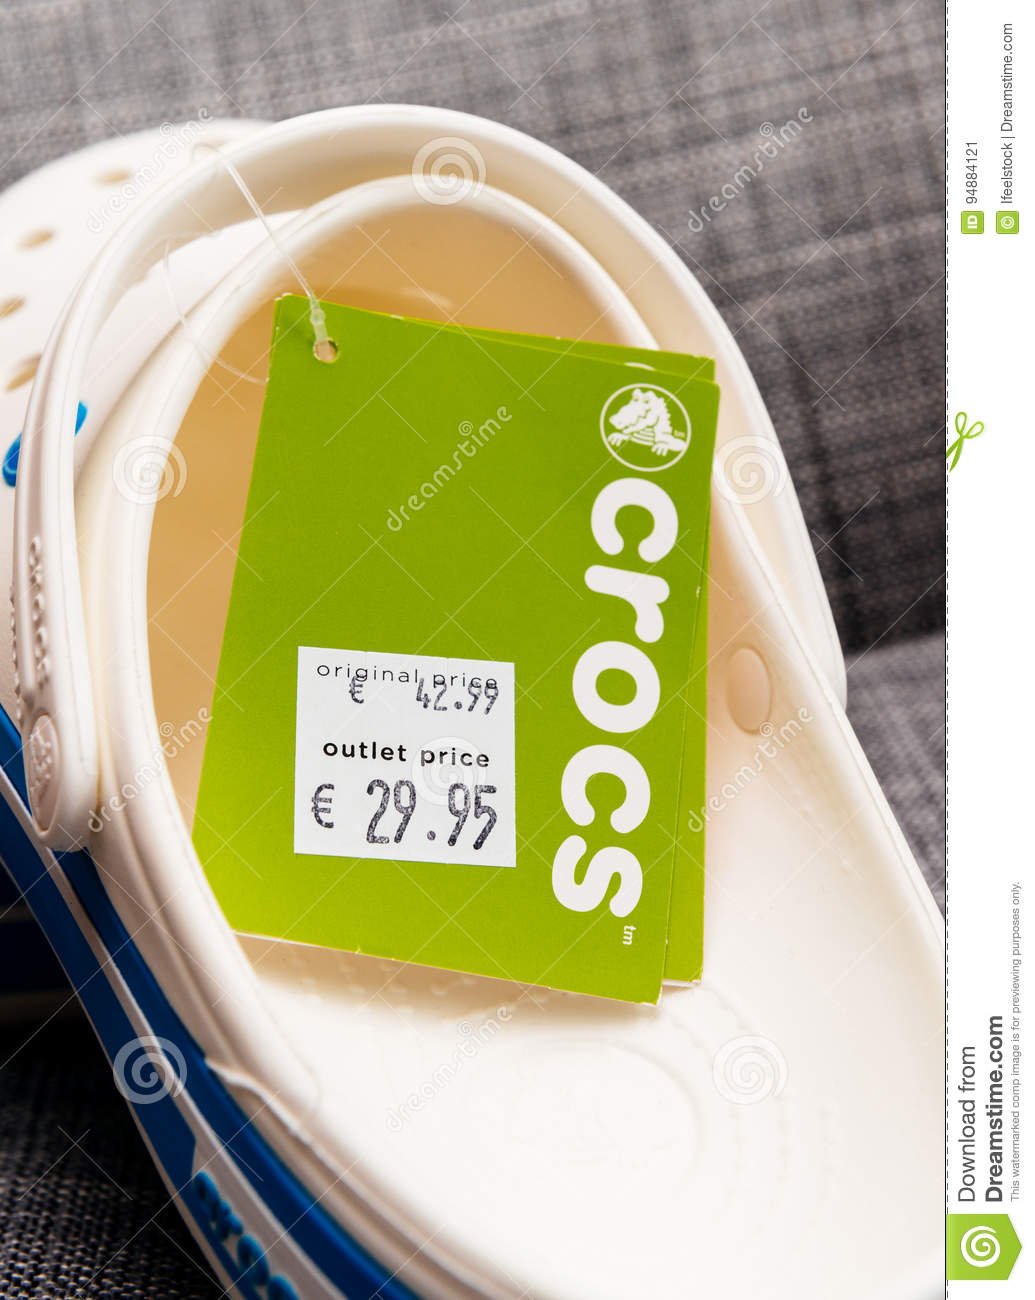 3f83312d460b6e ... 2016  Pair of new Crocs foam clogs on with regular price tag and outlet  price tag reduction. Crocs is a worldwide company selling comfortable shoes